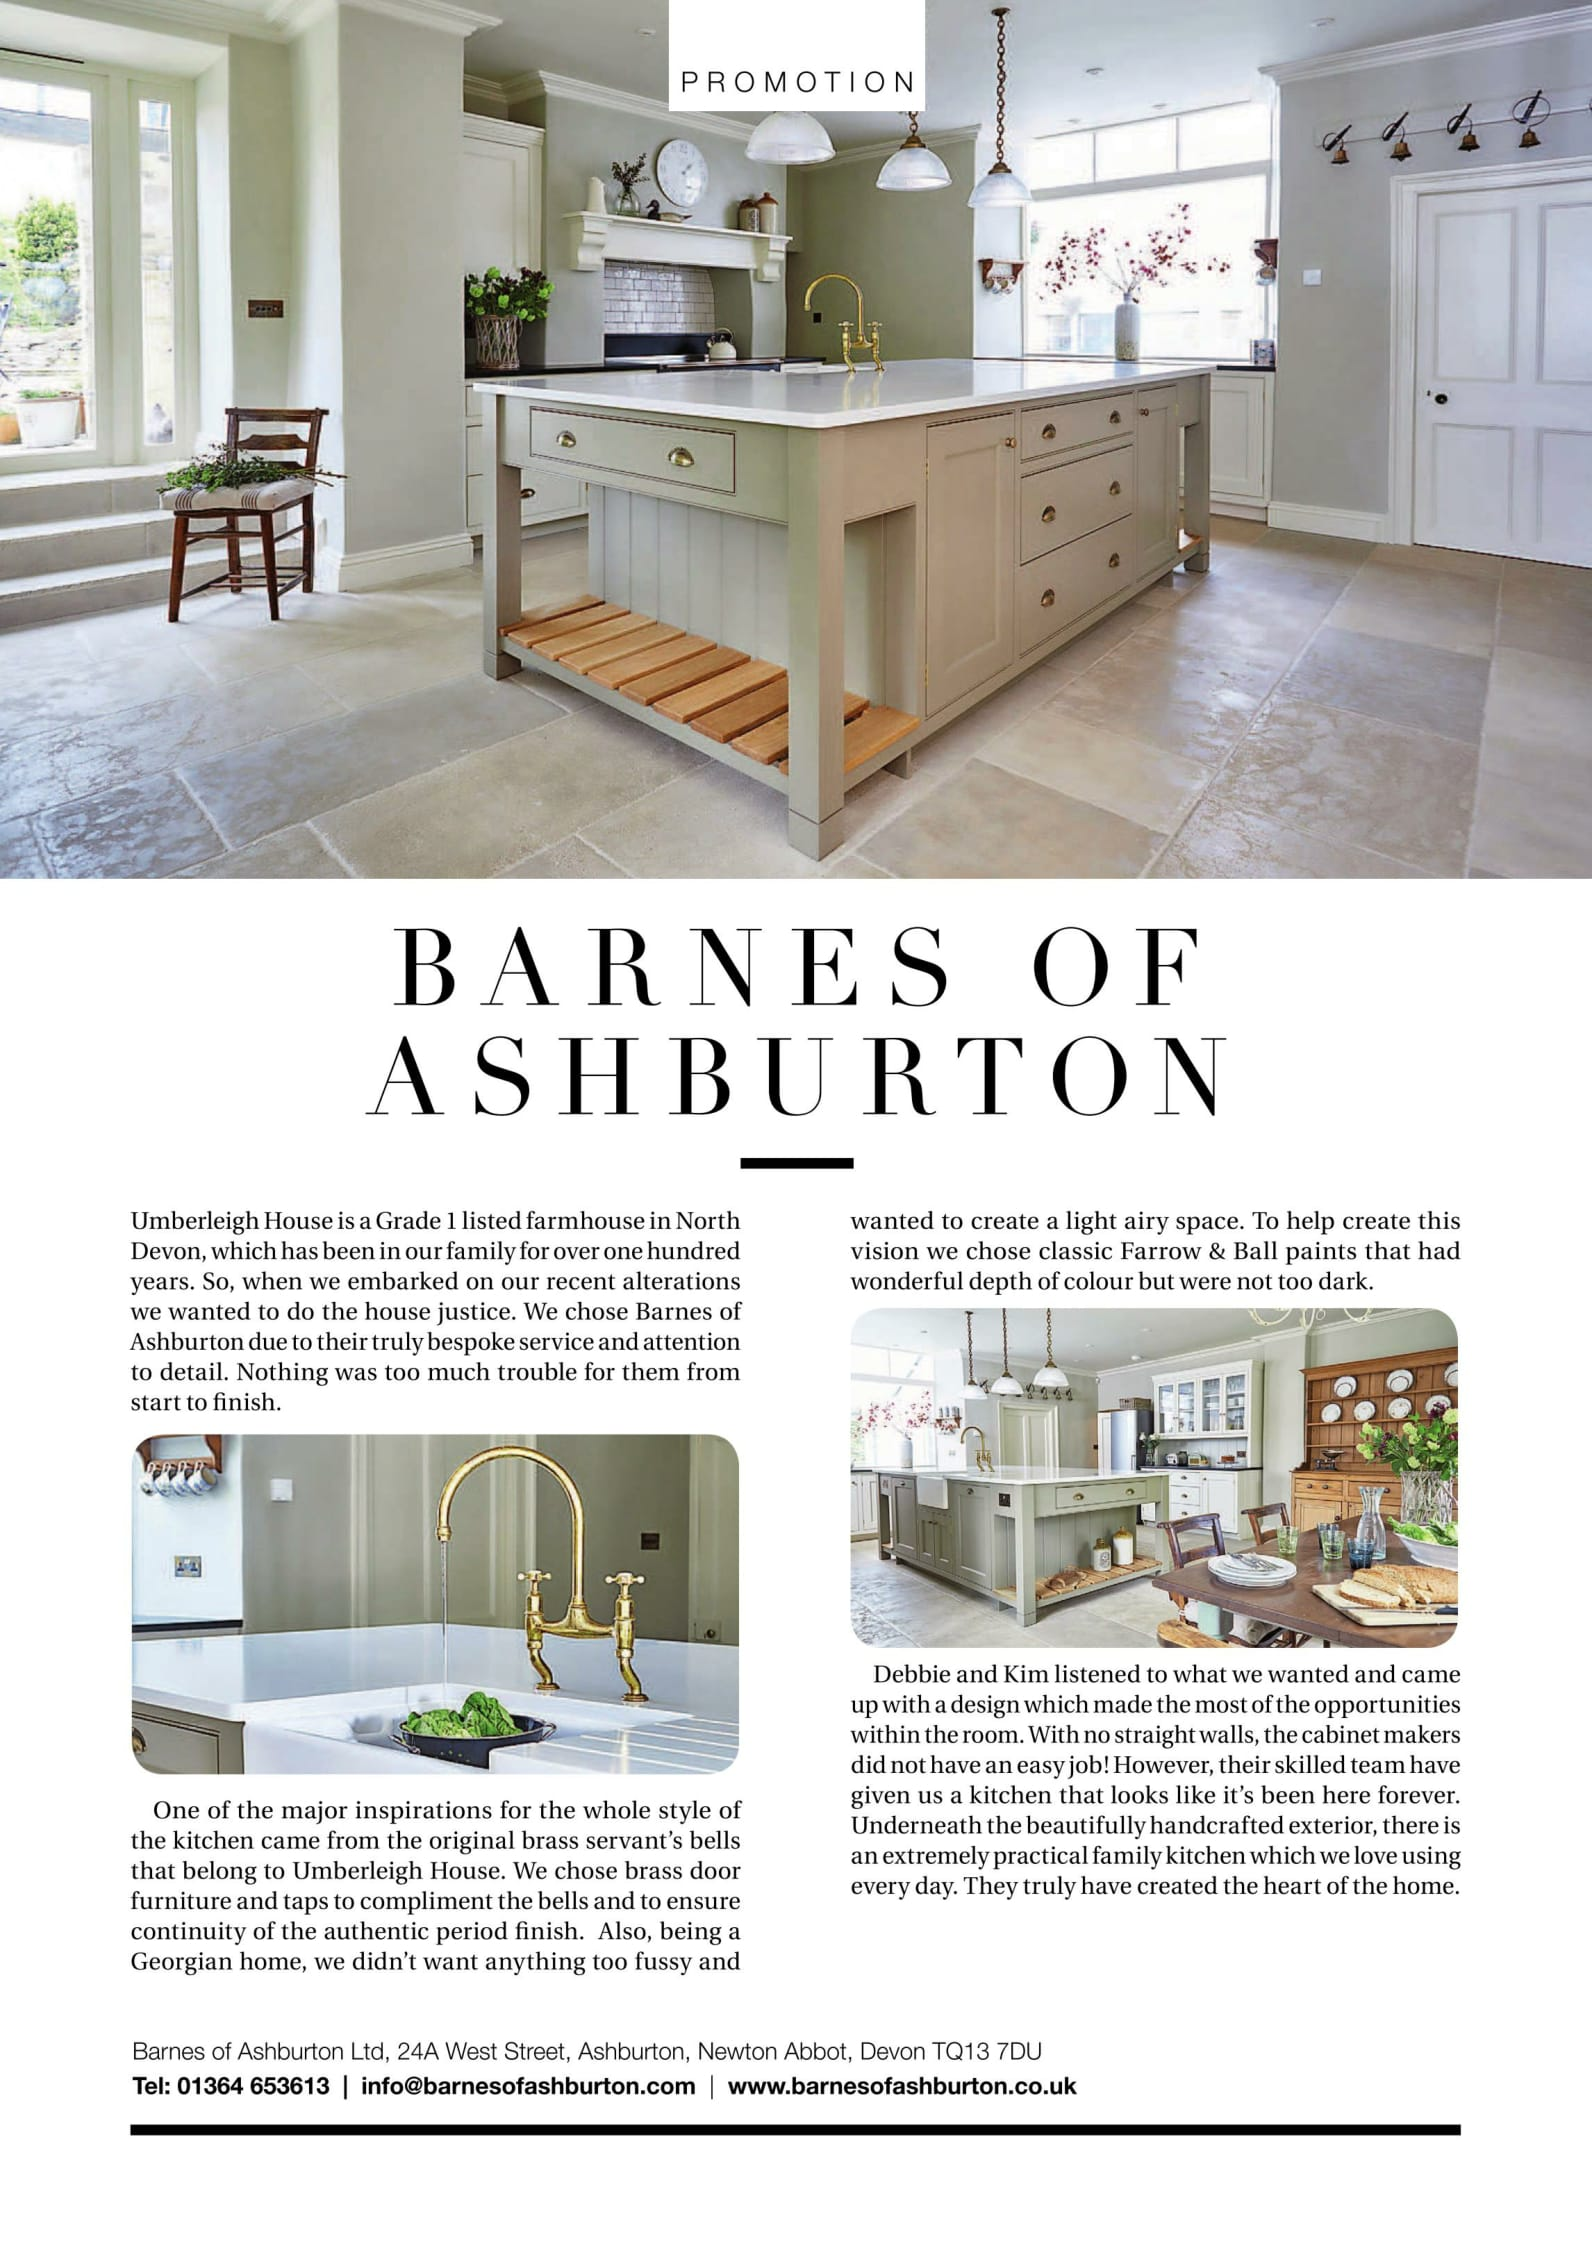 Barnes of Ashburton kitchens in Devon Life